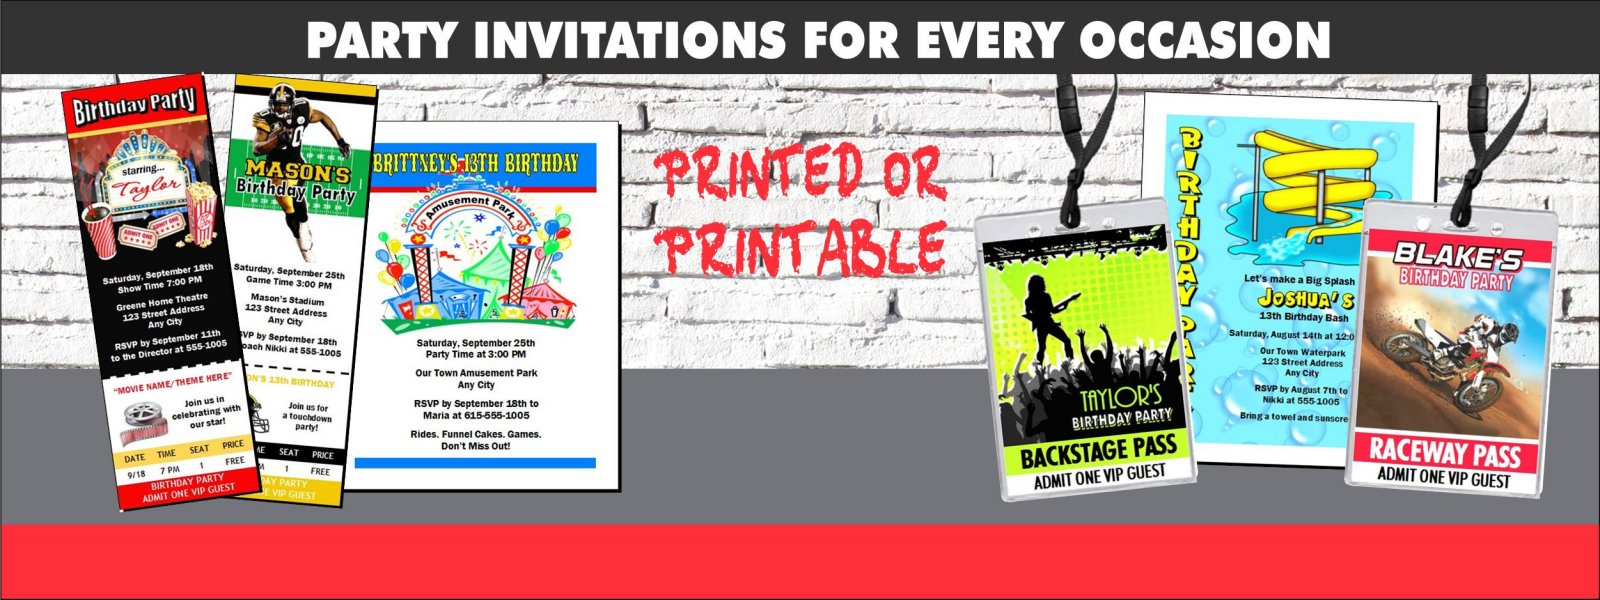 Printed or Printable Party Invitations Styles